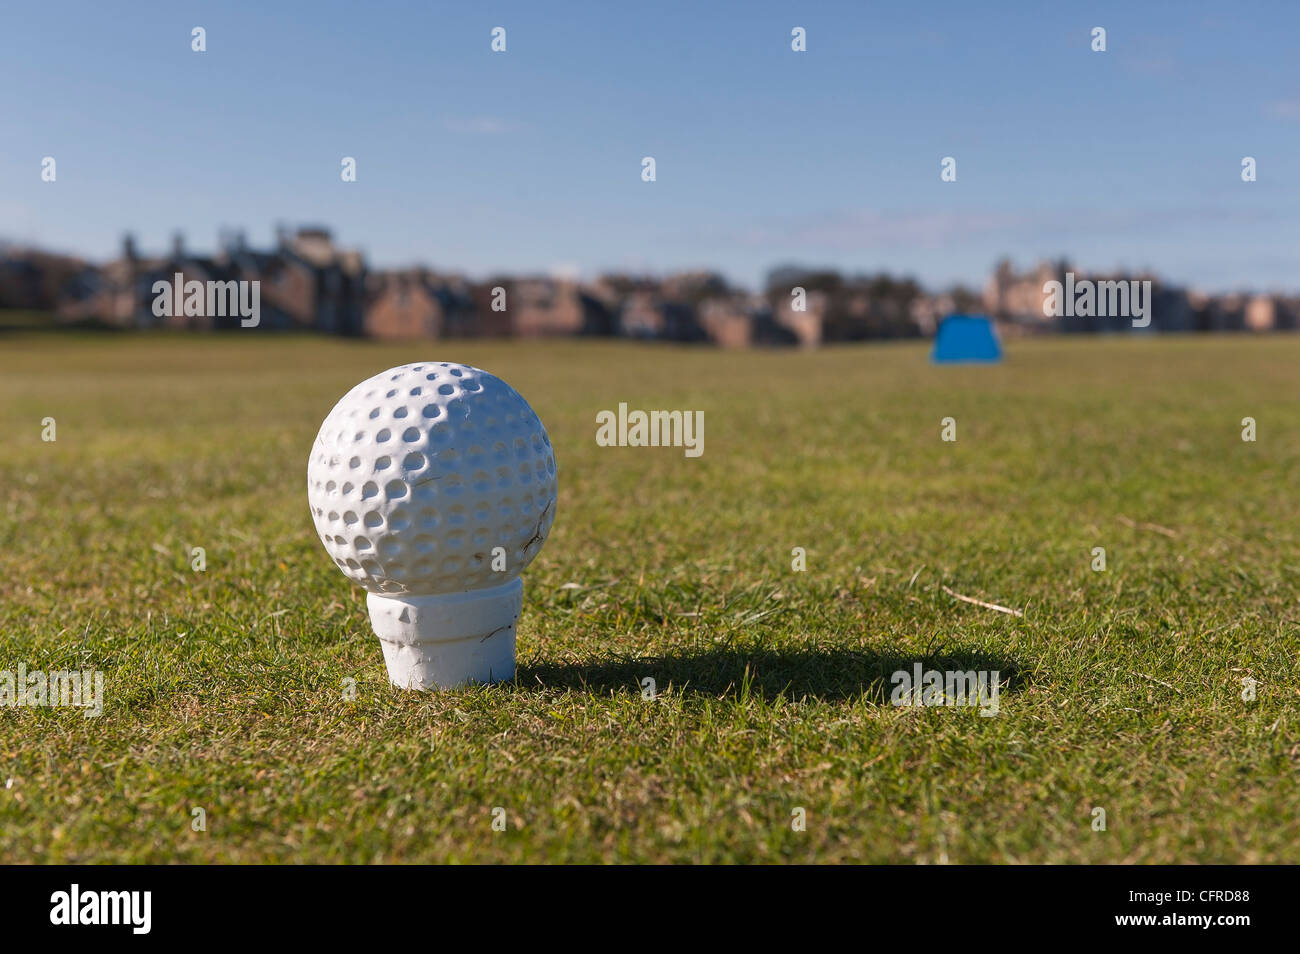 Golf ball shaped marker on the tee of a golf course. - Stock Image